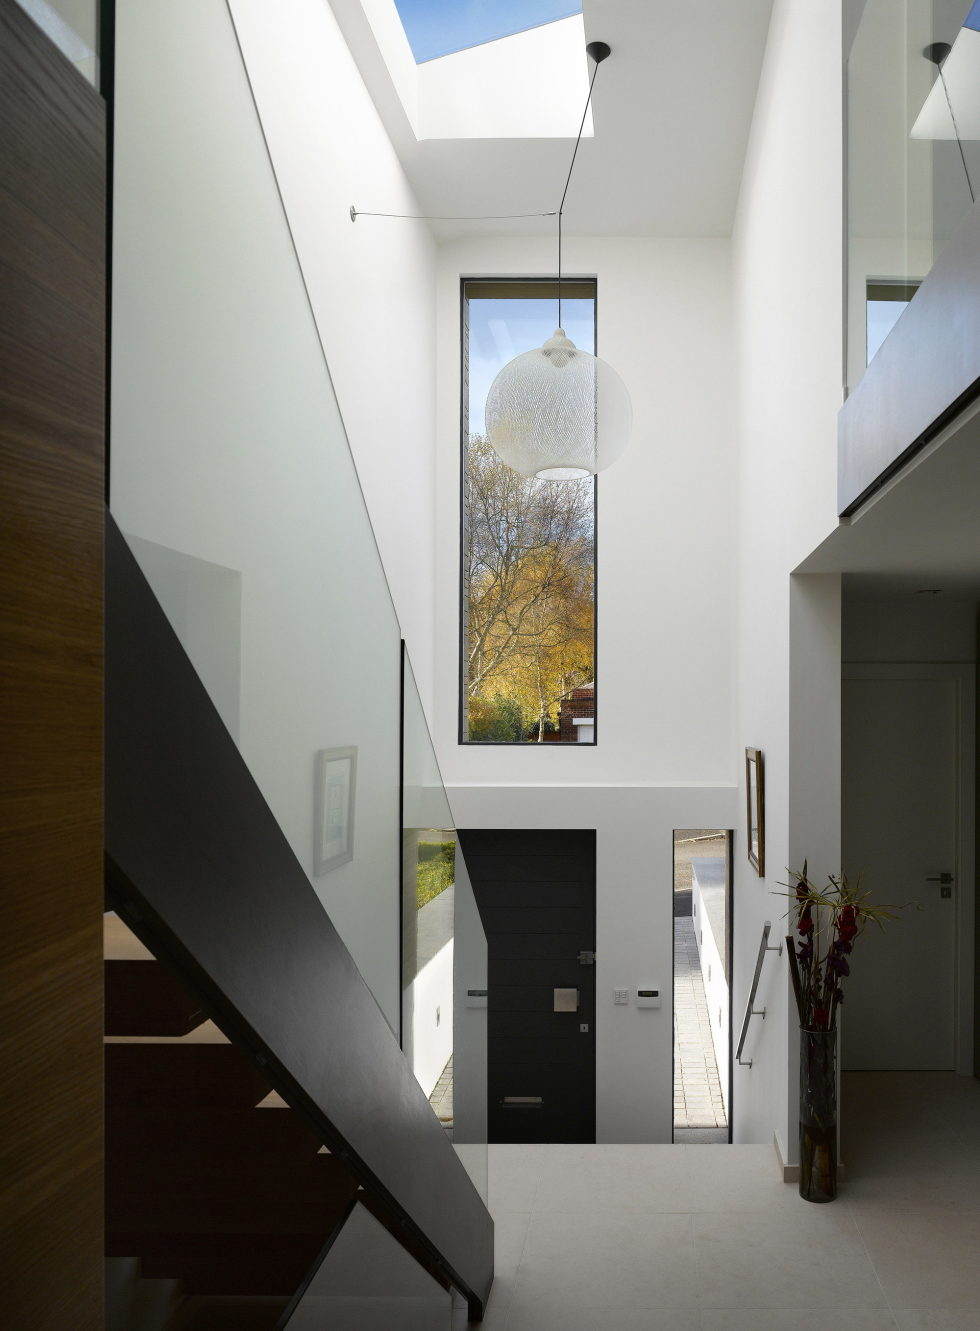 The project of House 1005 by Stephenson ISA Studio 5